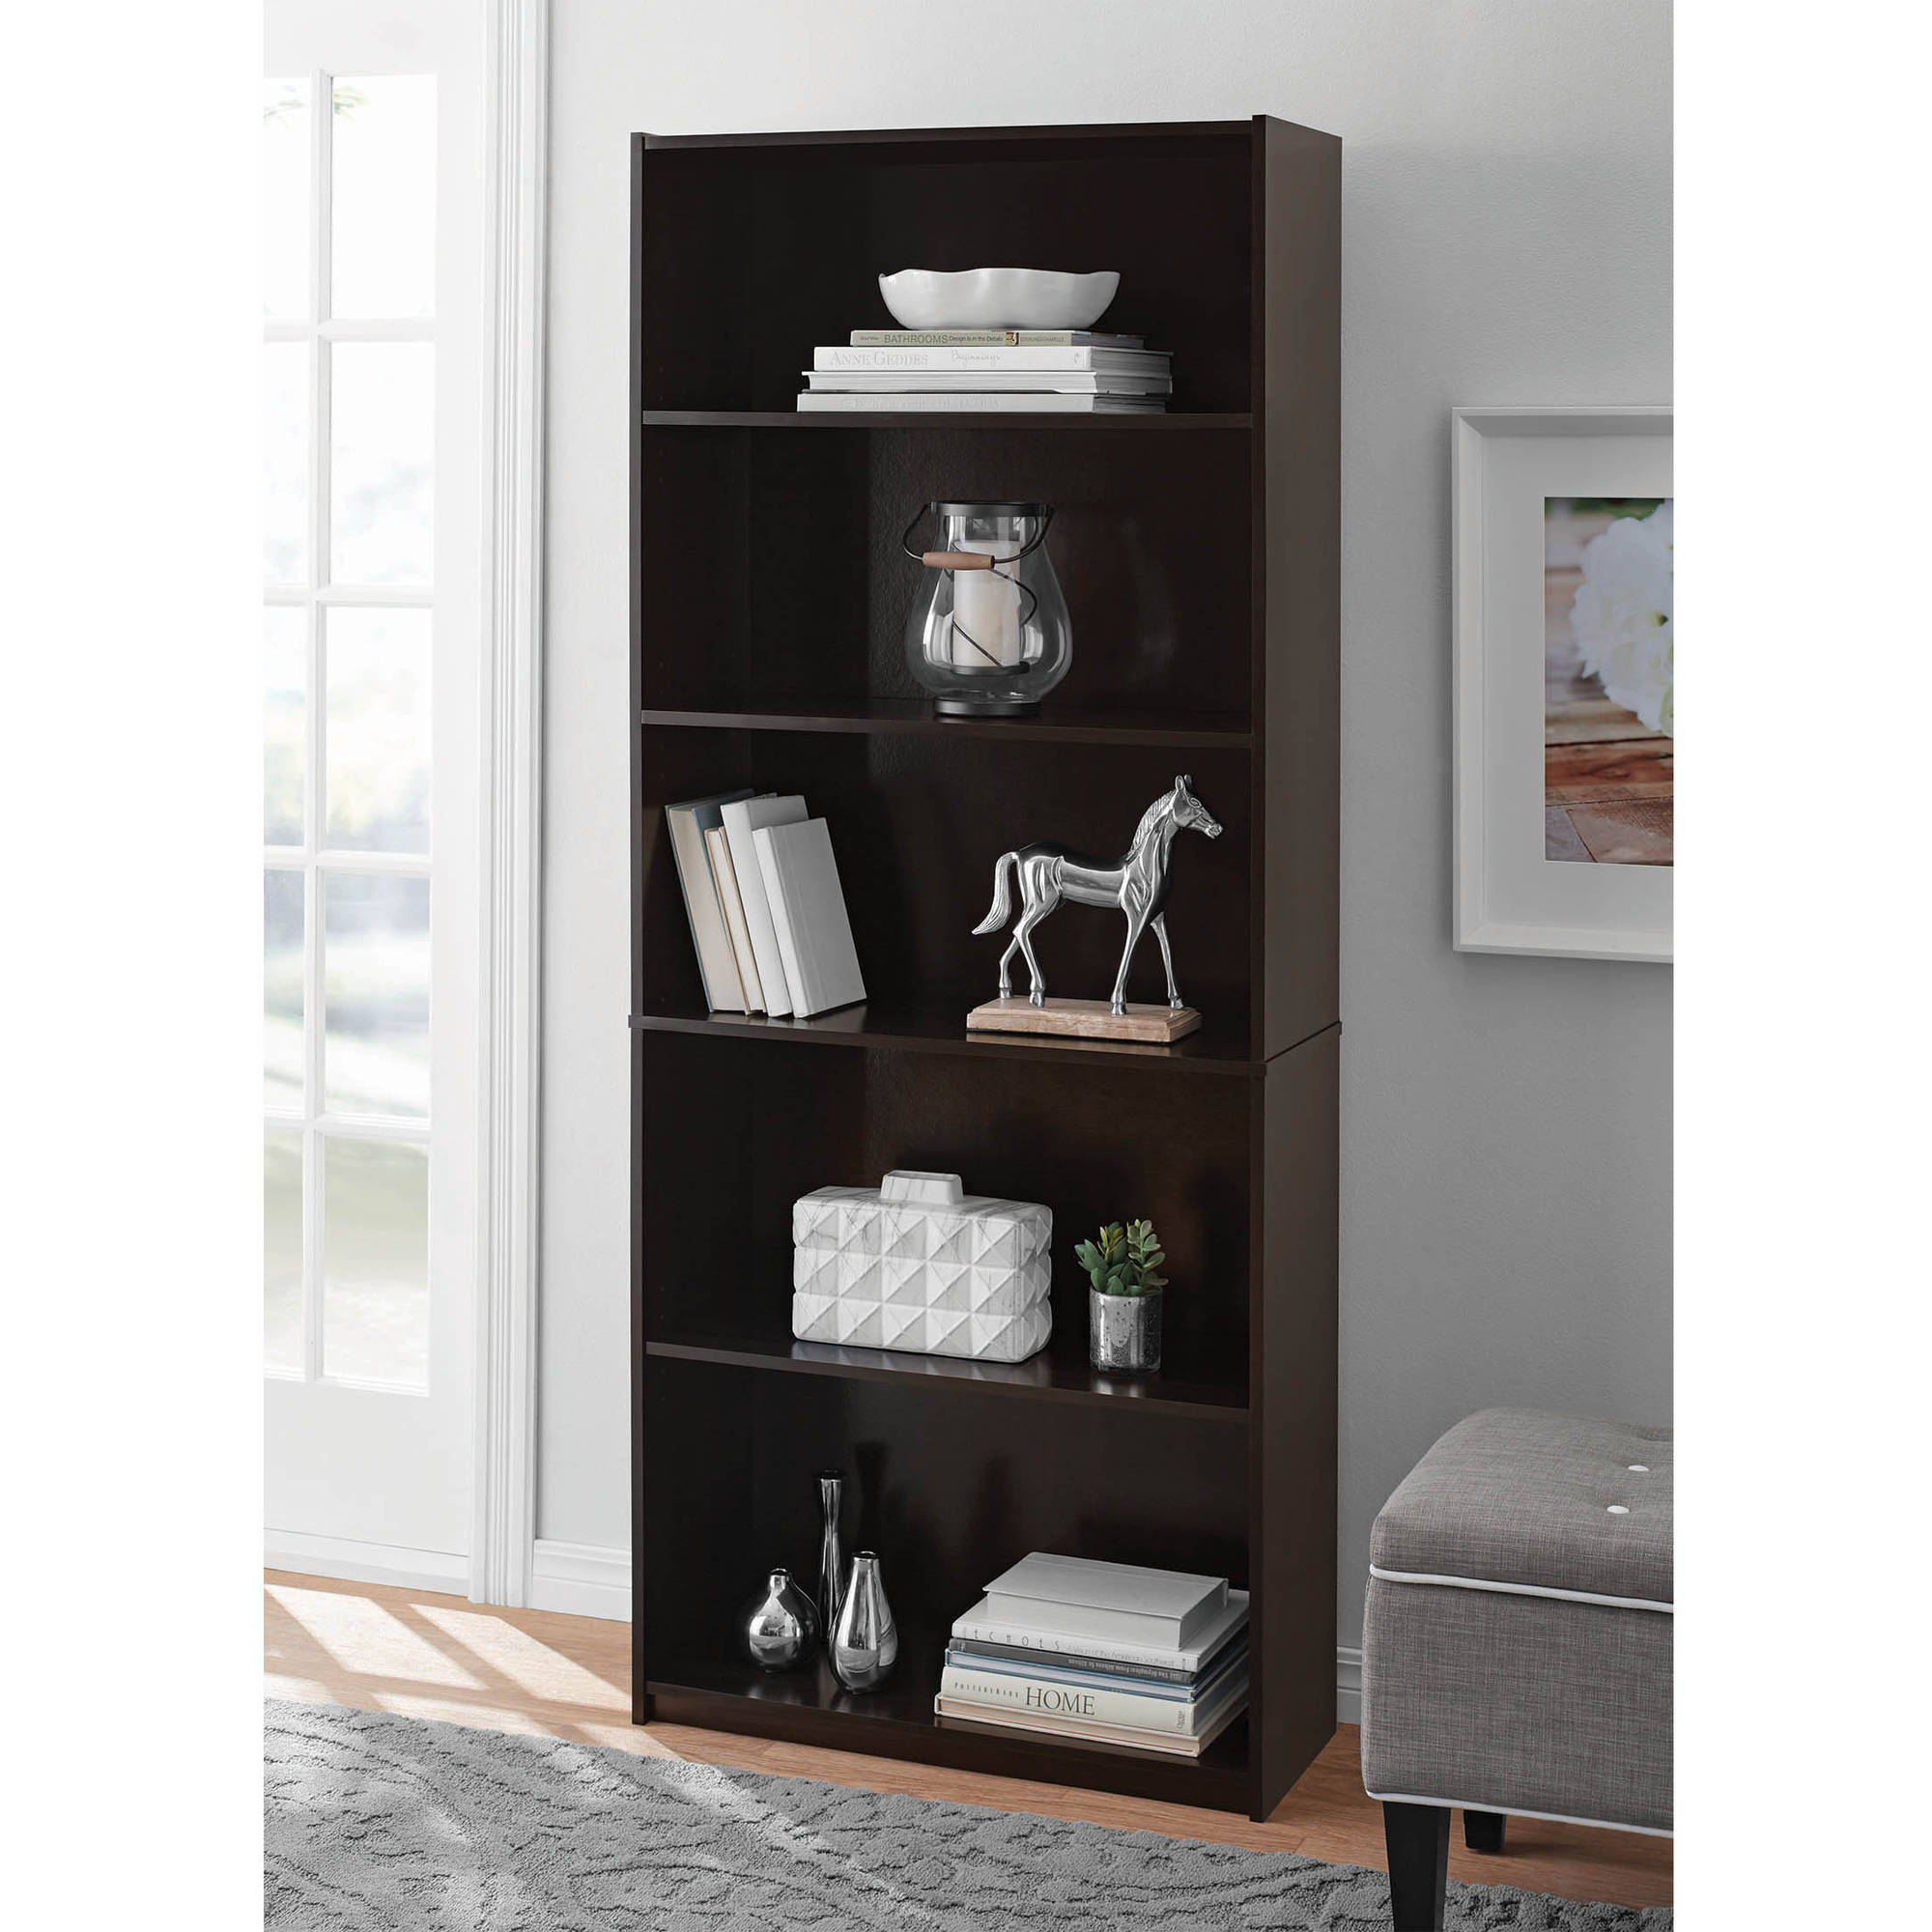 Mainstays 5 shelf standard wood bookcase